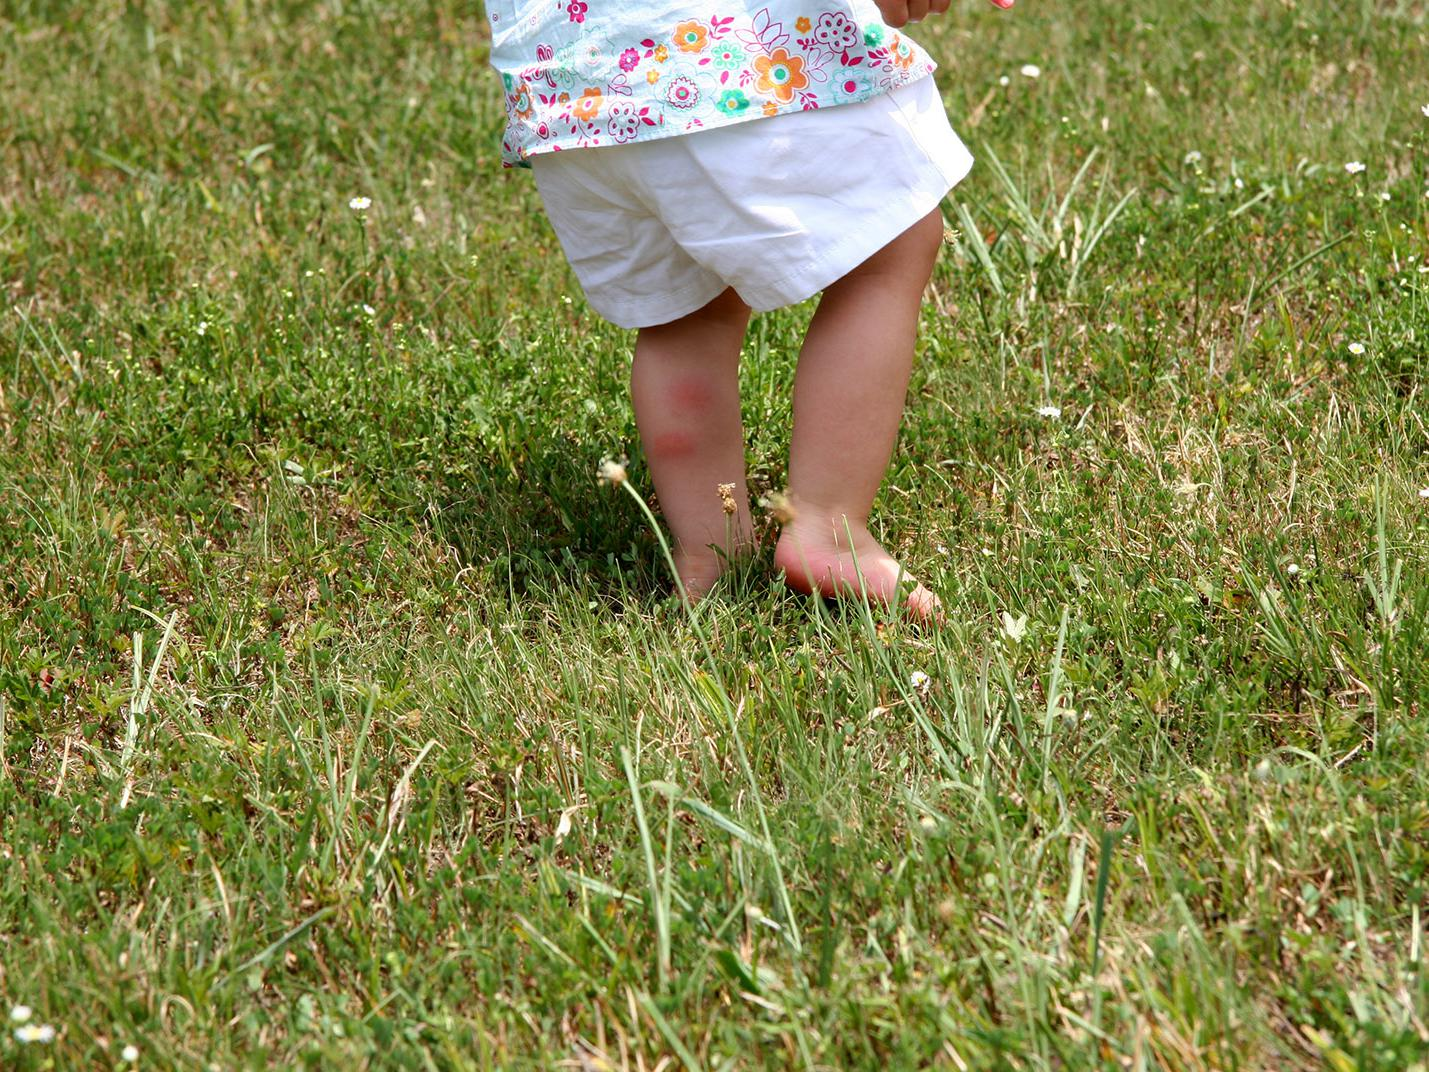 A small child runs barefoot through tall grass and has red insect bites on his calf.